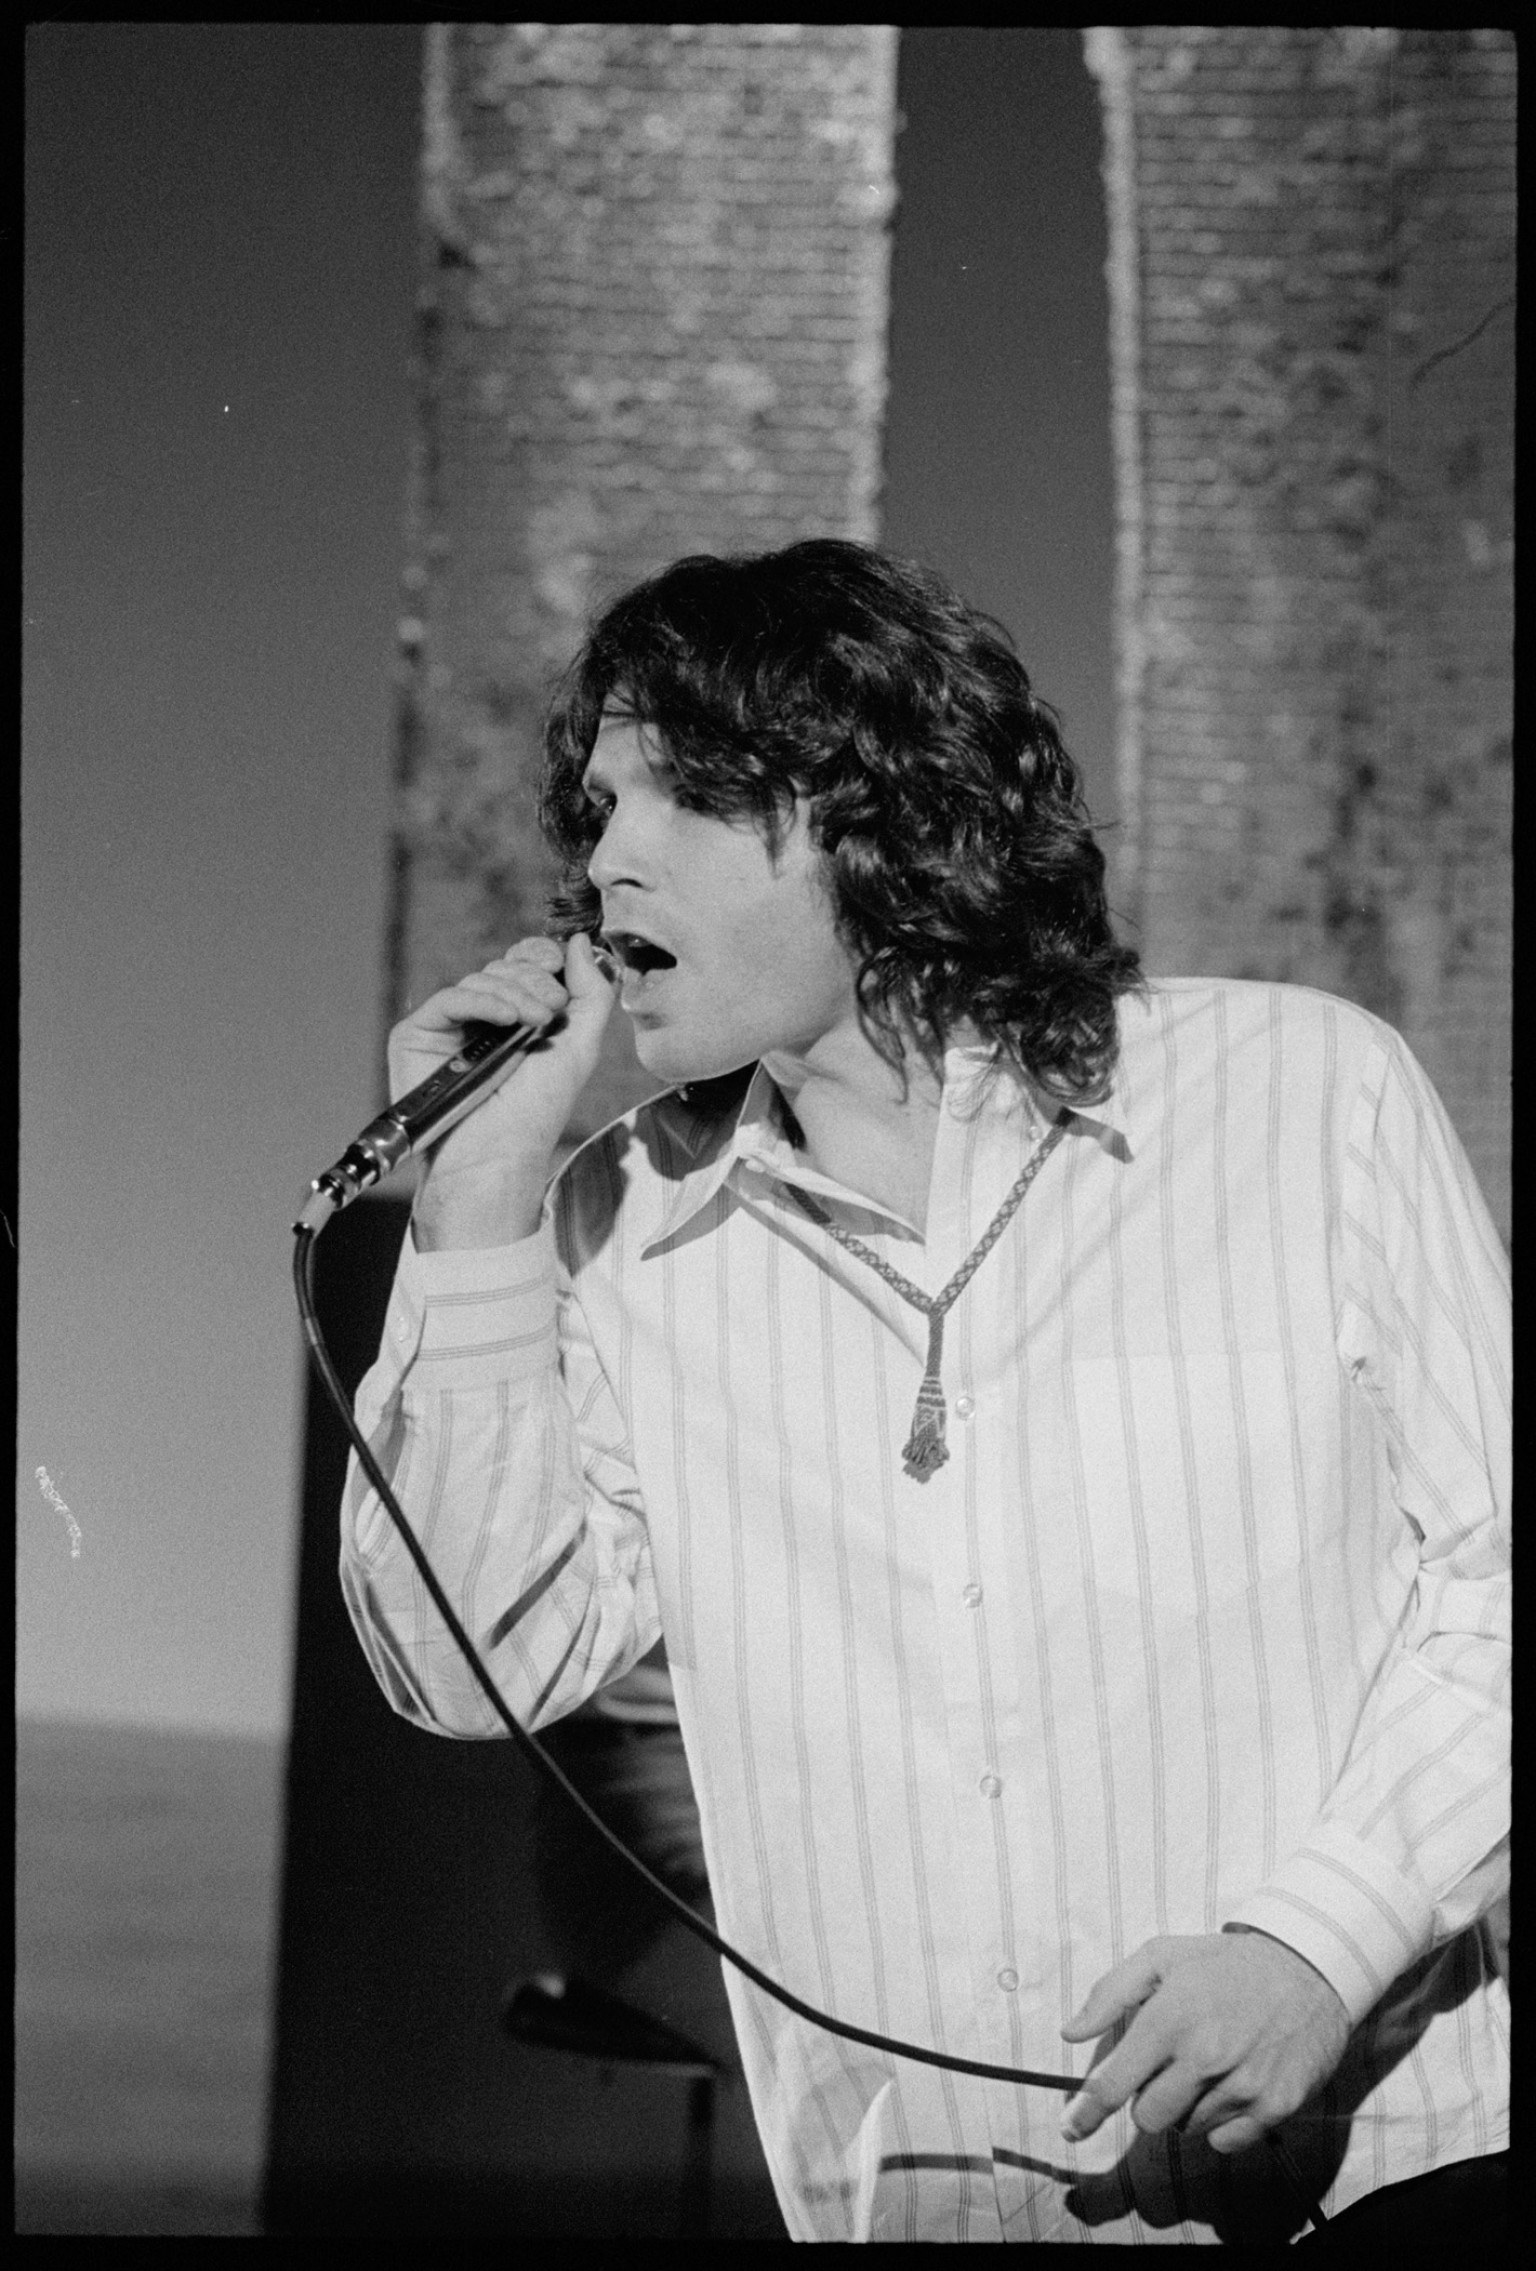 Jim Morrison\u0027s Childhood Home For Sale In Arlington Va. (PHOTOS) | HuffPost  sc 1 st  Huffington Post & Jim Morrison\u0027s Childhood Home For Sale In Arlington Va. (PHOTOS ...